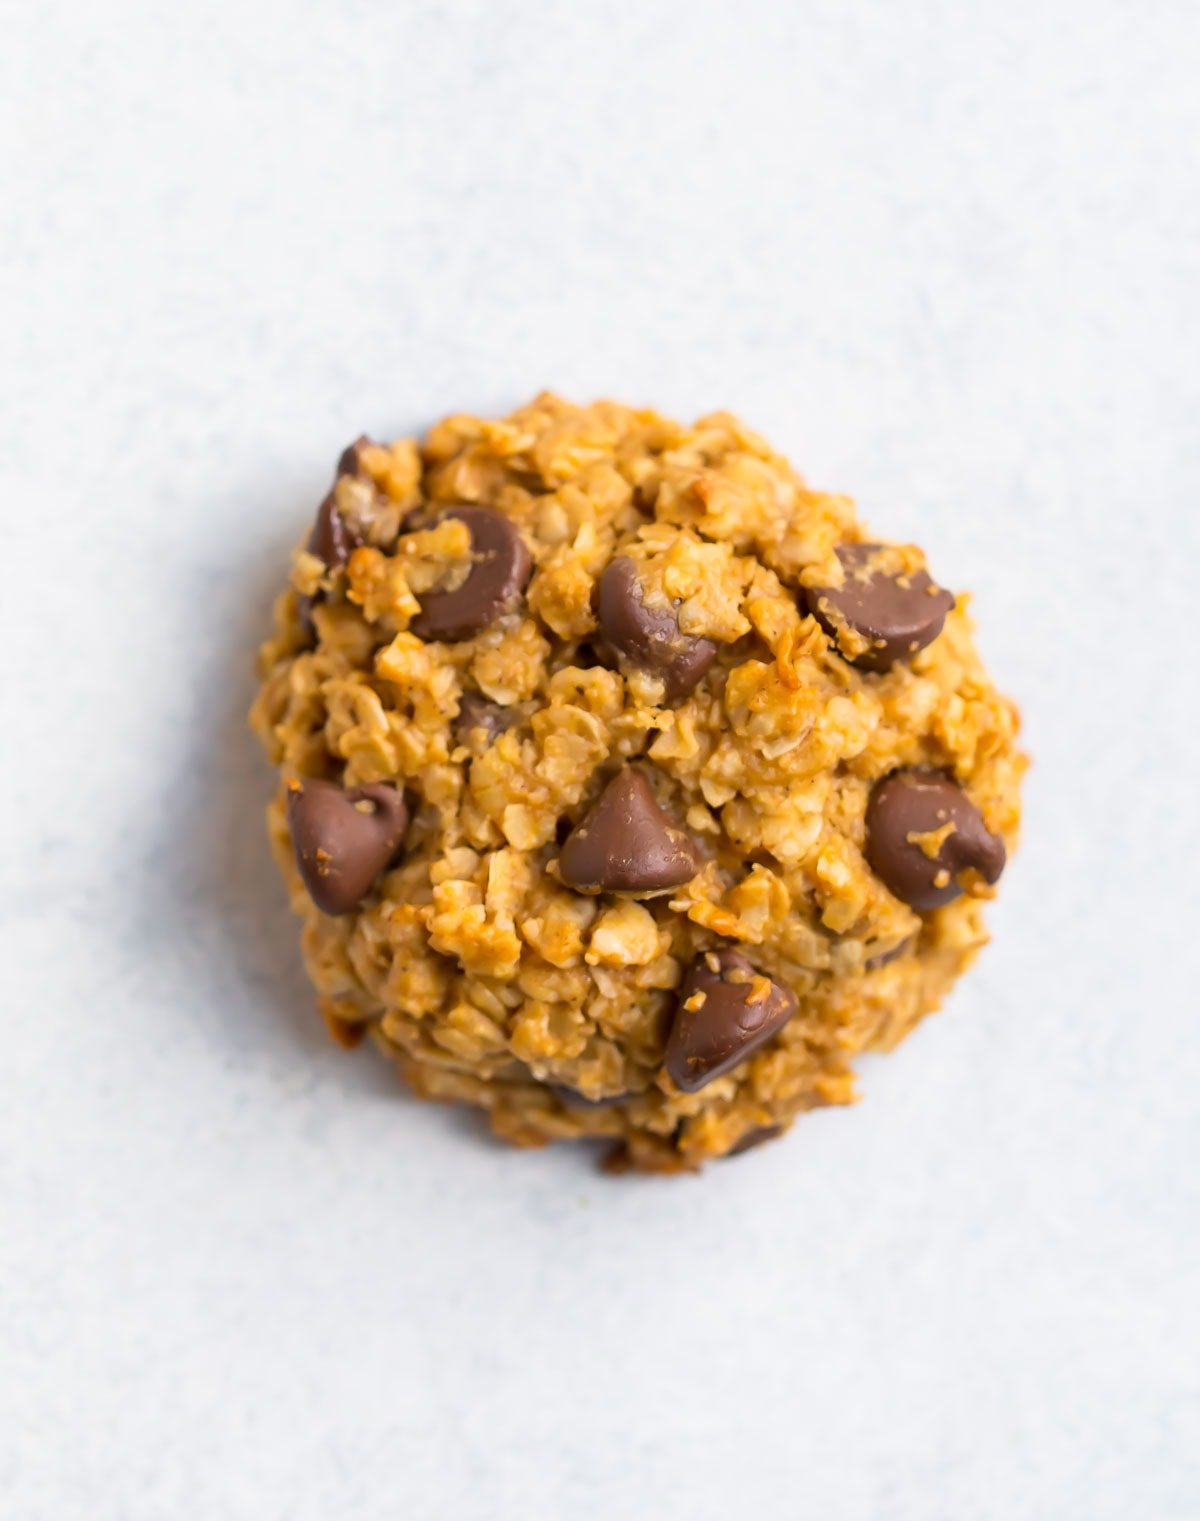 A peanut butter oatmeal cookie with chocolate chips